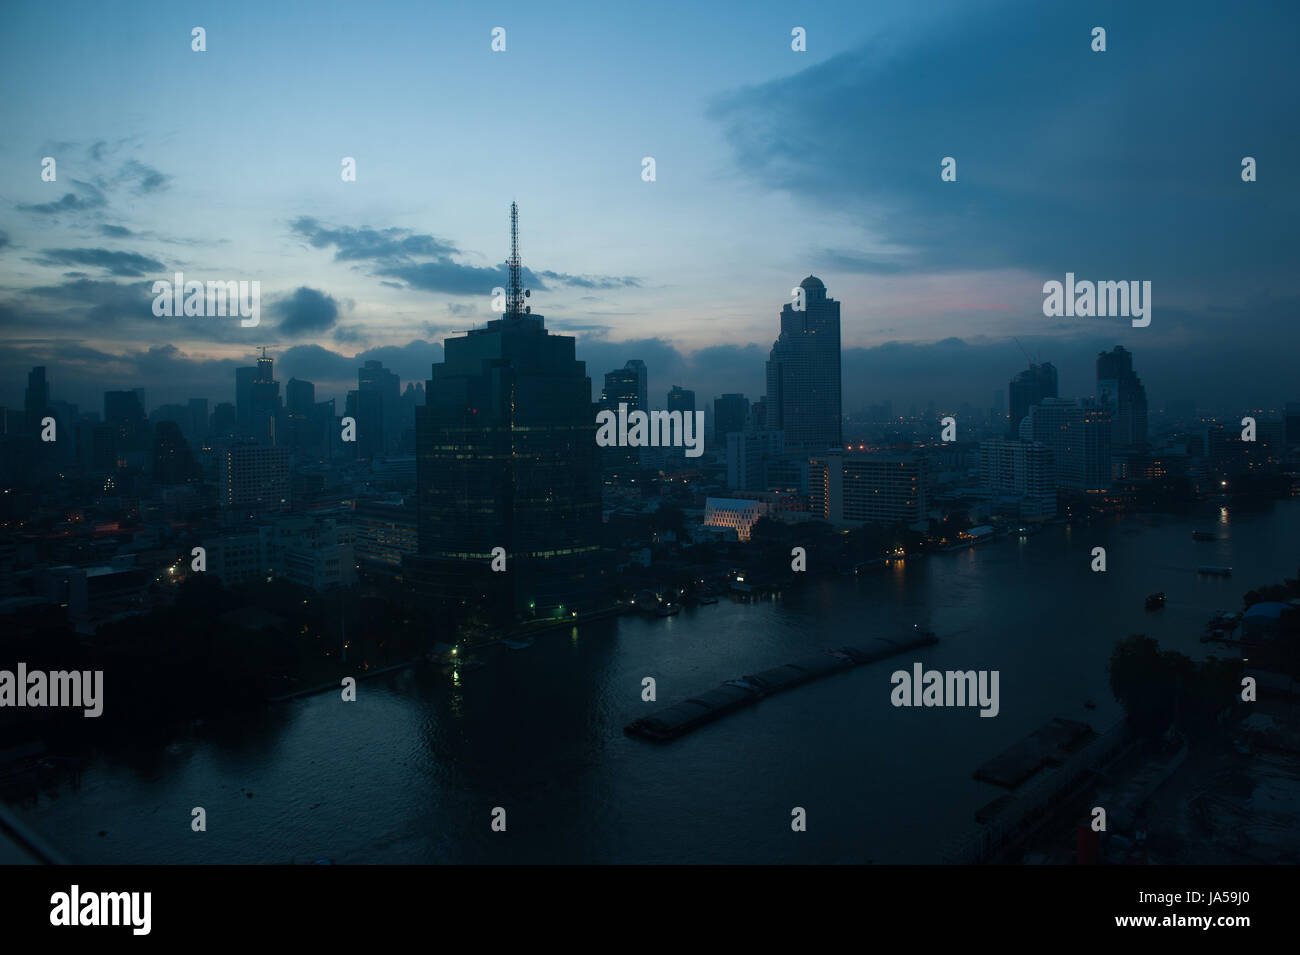 Bangkok at night - Stock Image